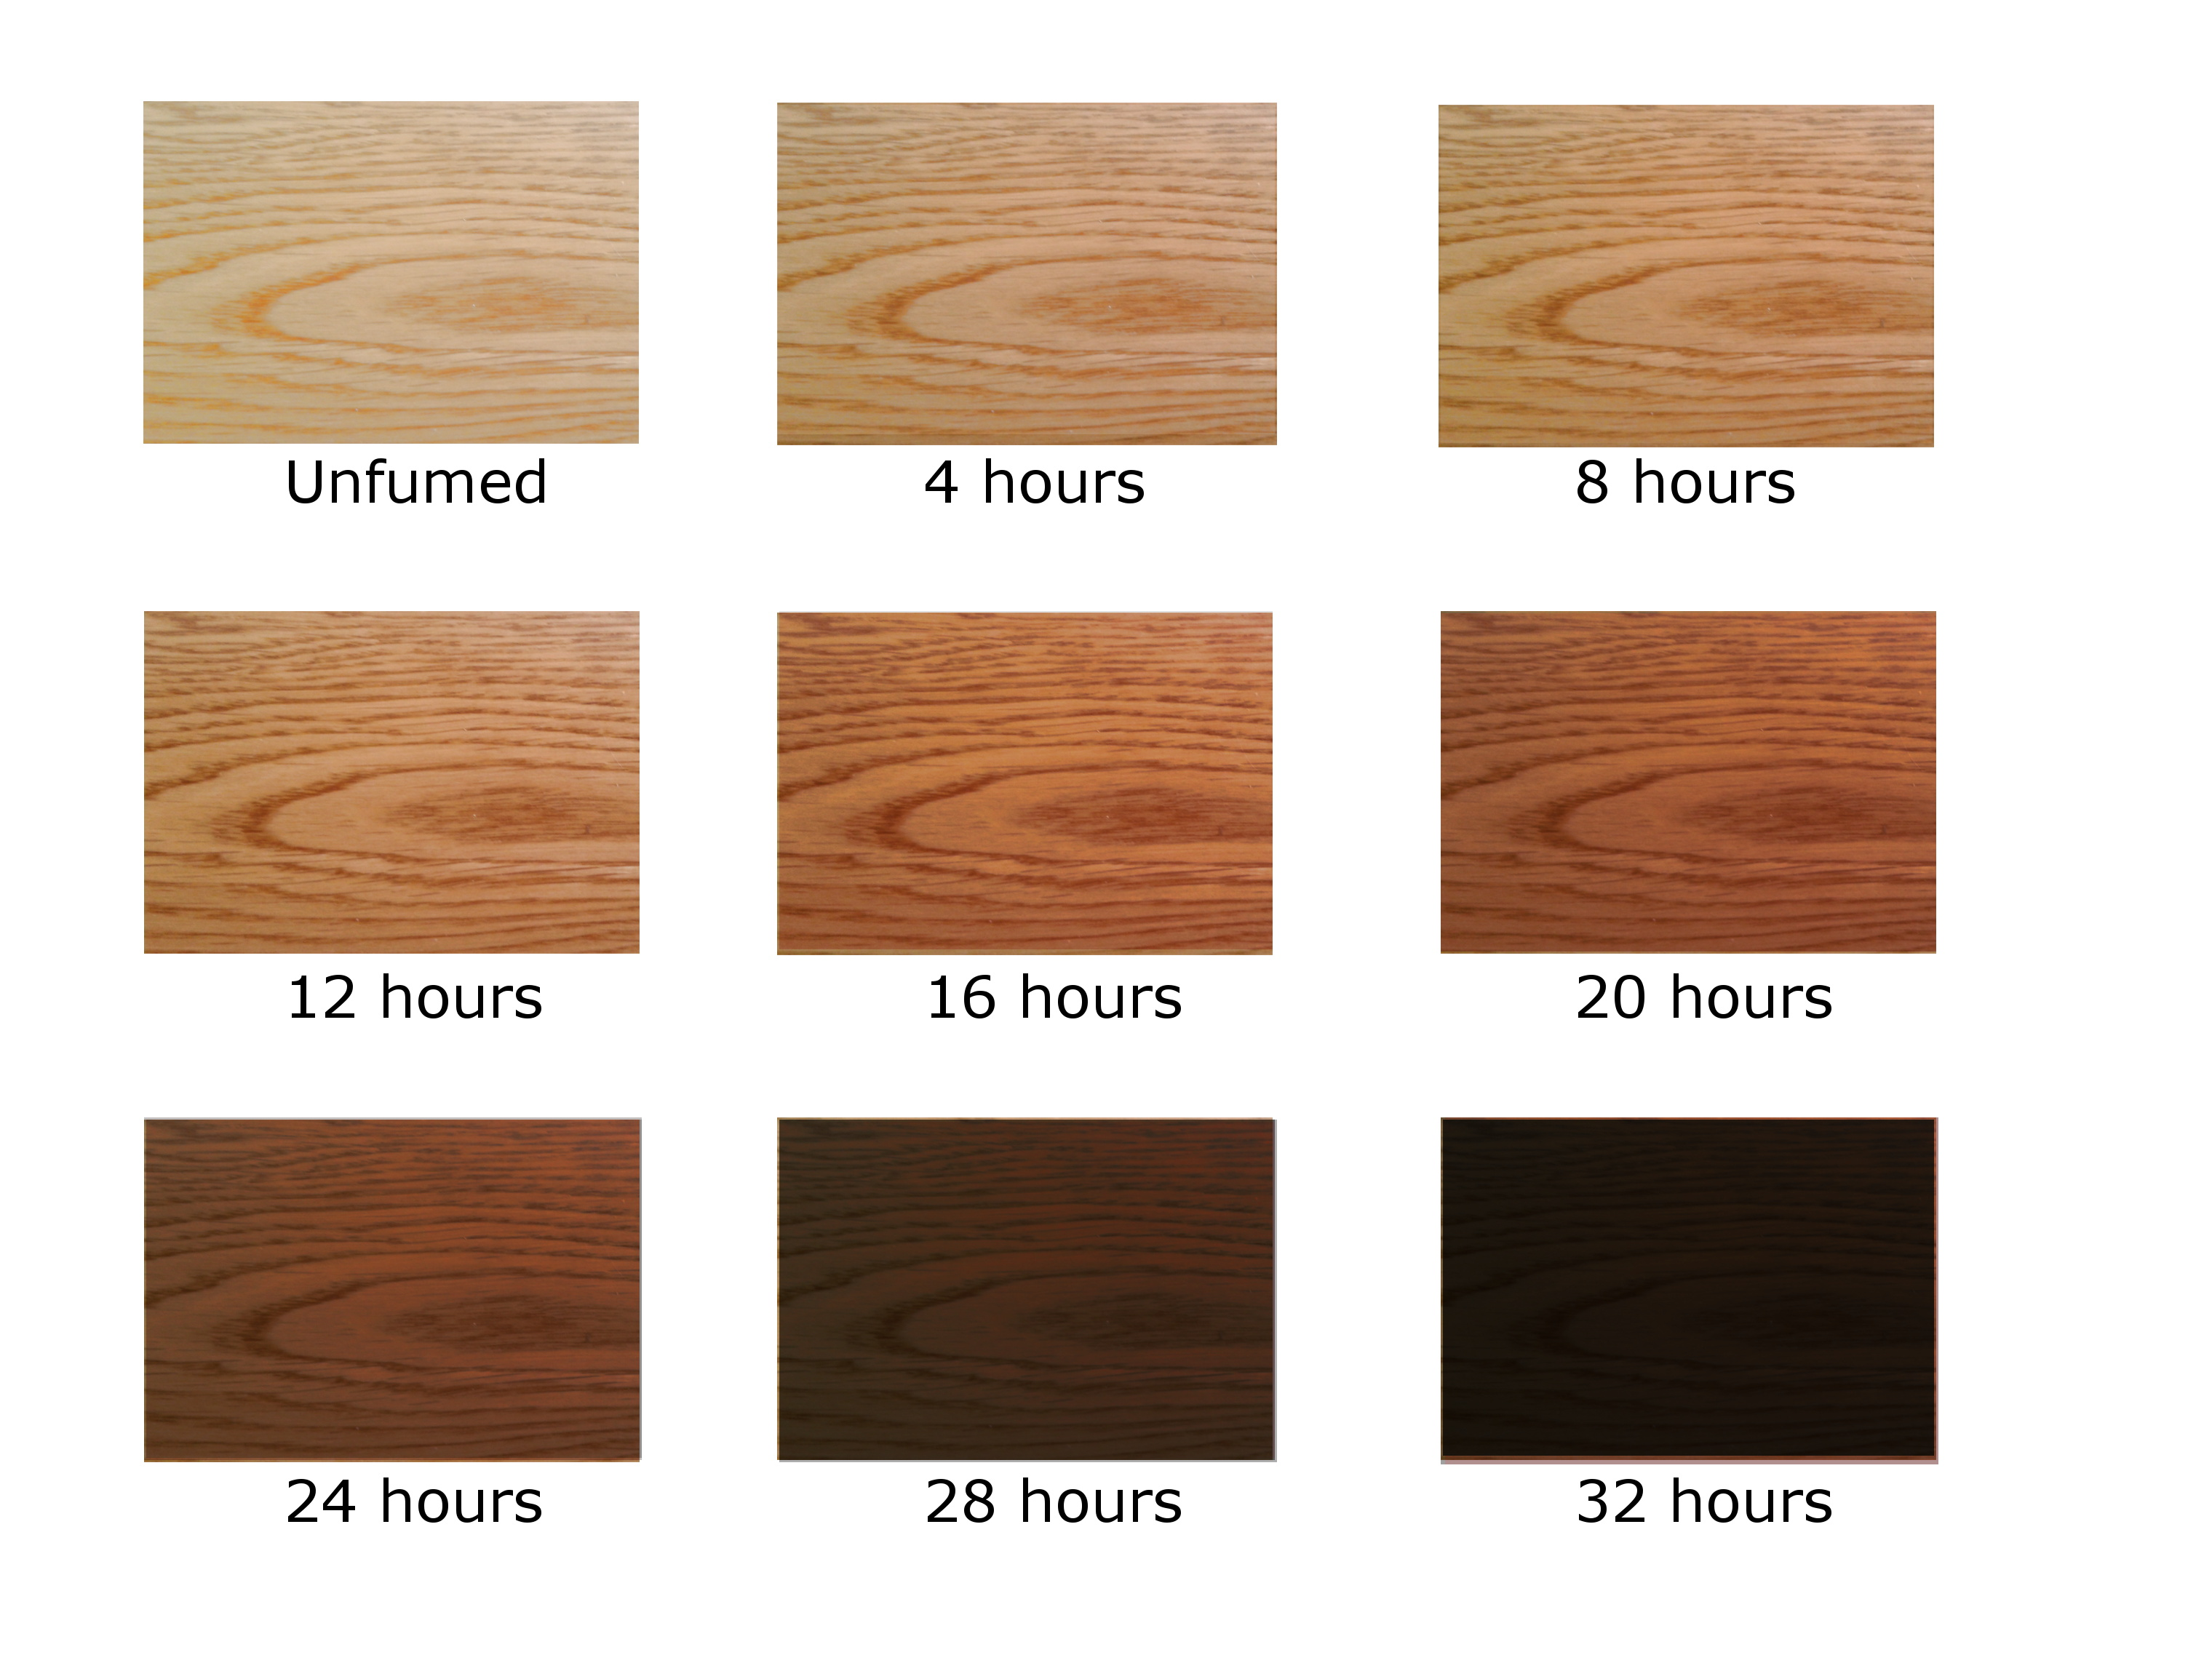 Wood Furniture Colors Chart So I Had A Body Amp Neck Made From Oak Finishing Tips